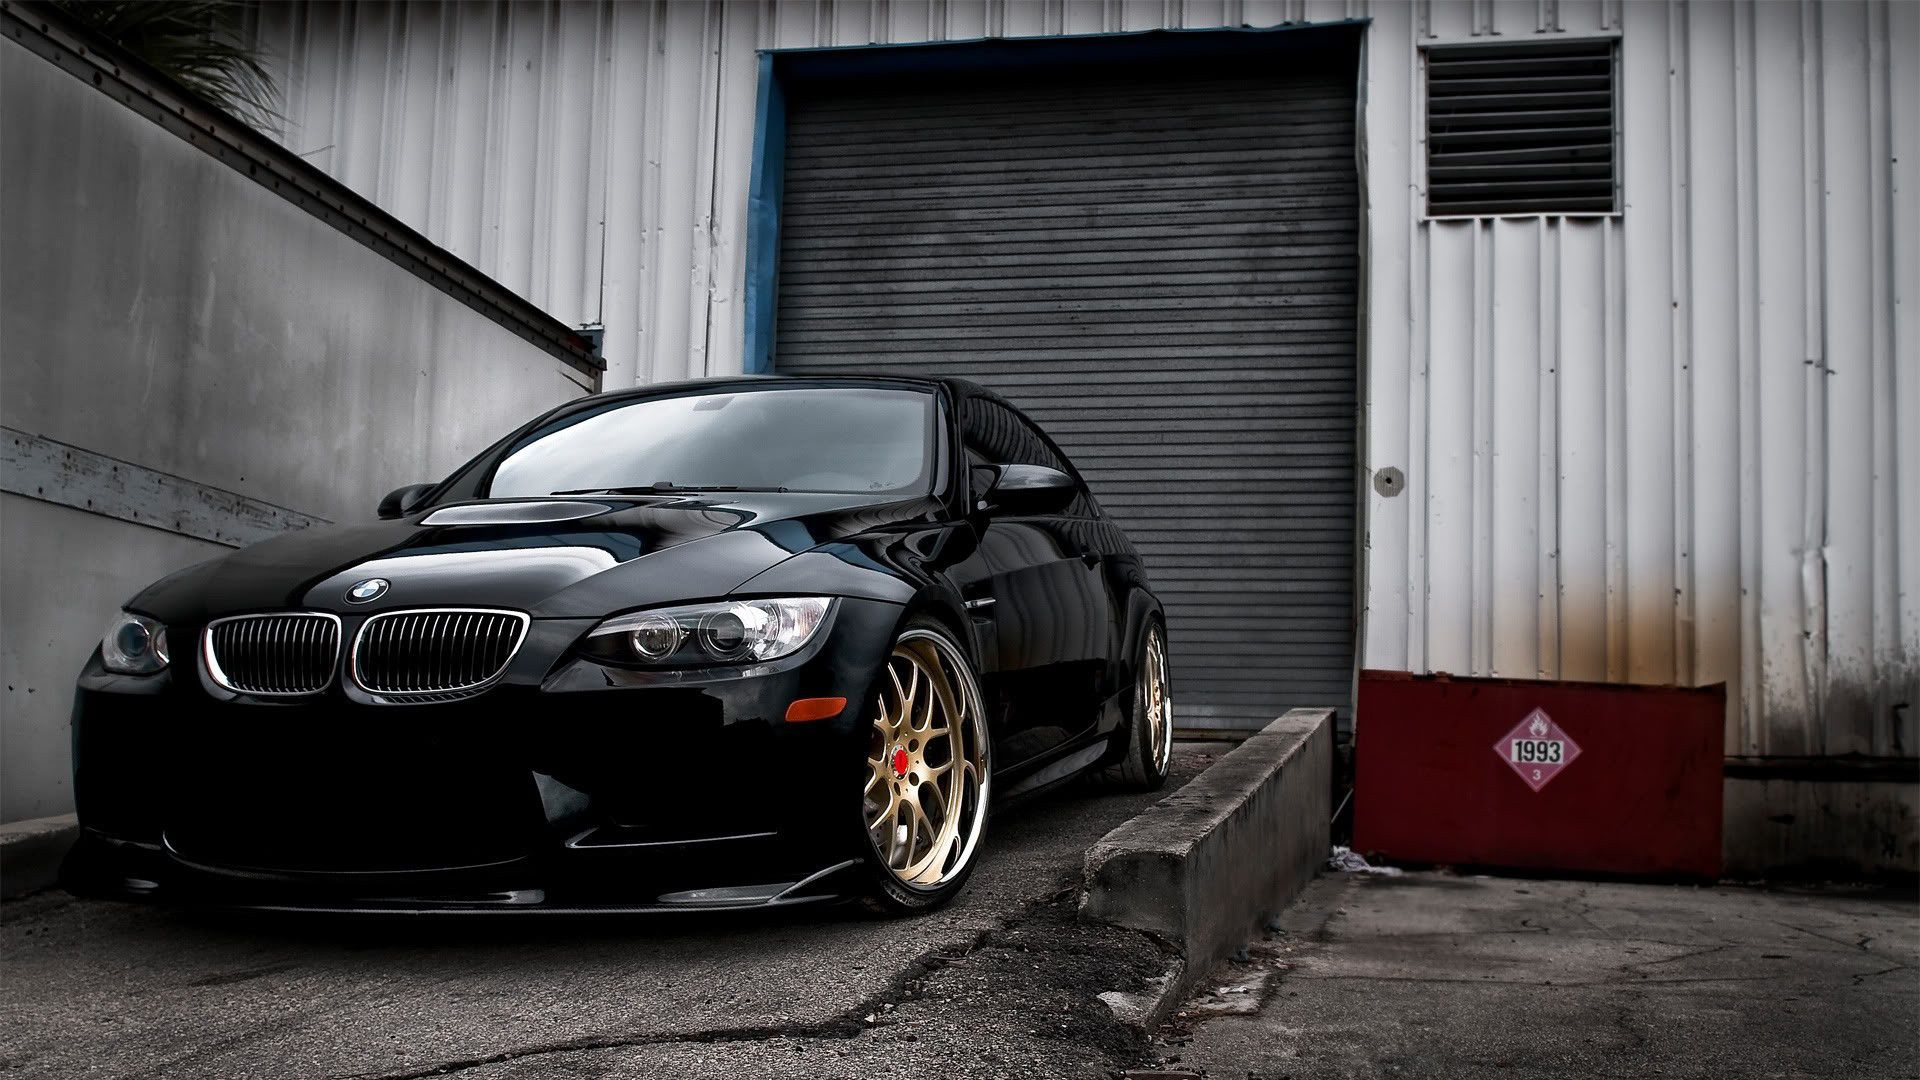 beamer Cars Pinterest BMW M3, BMW and Cars